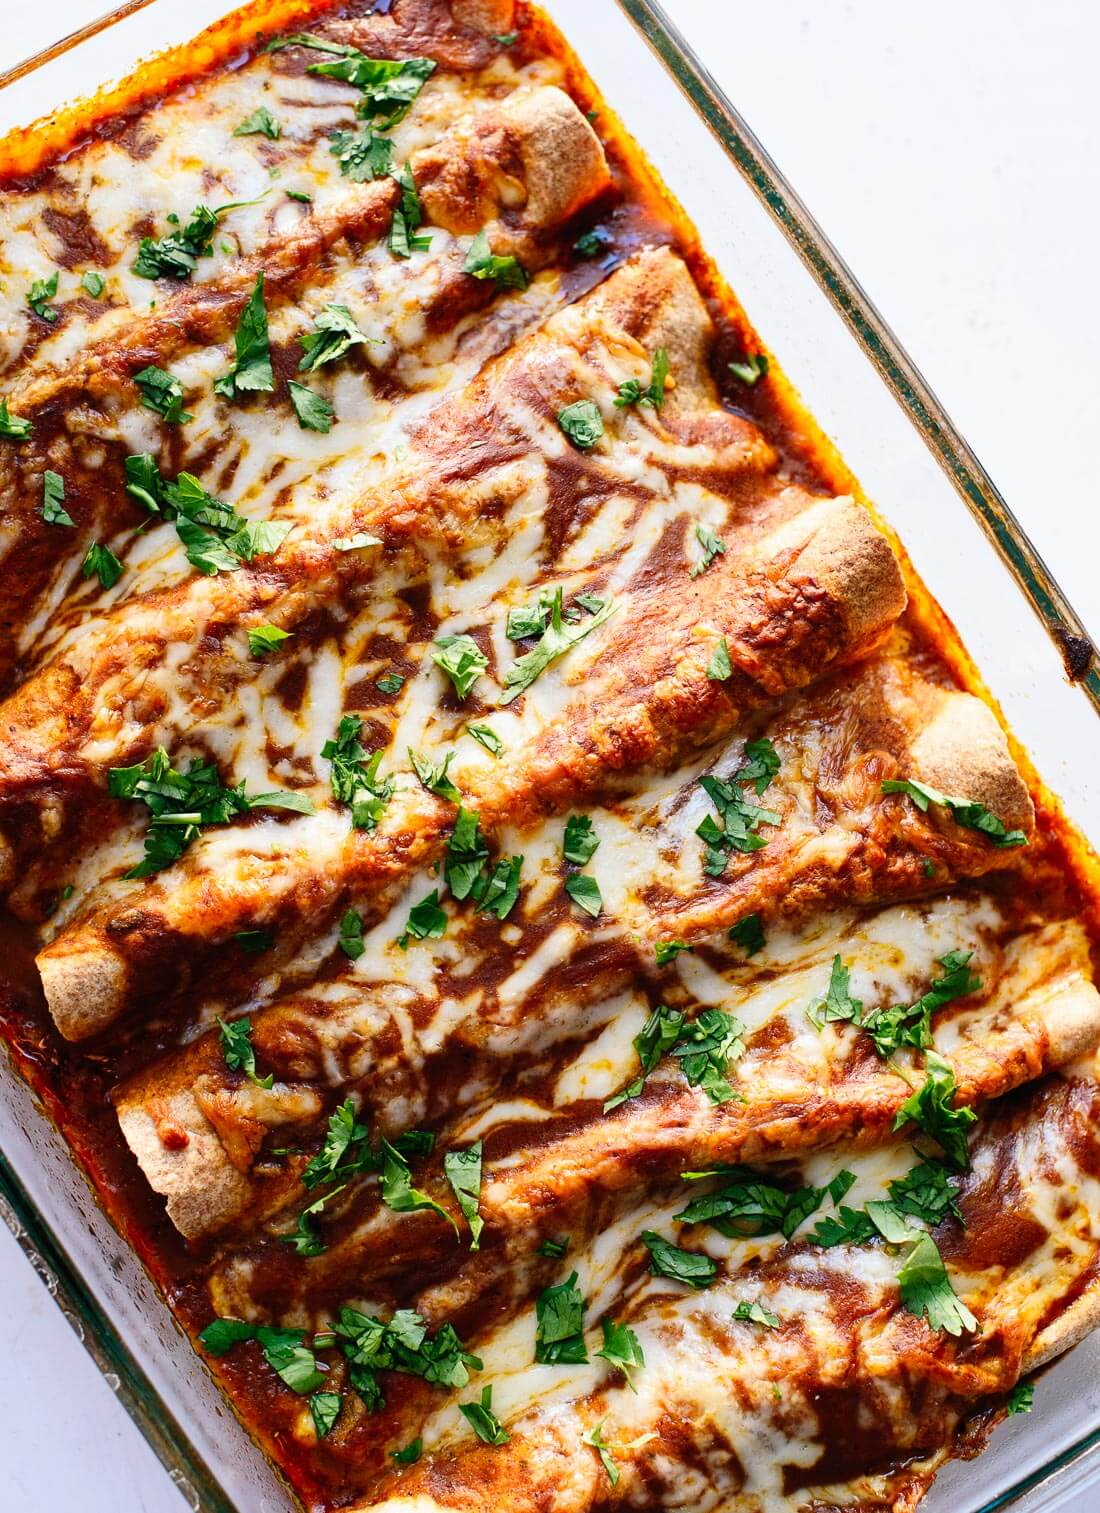 Black Bean and Spinach Enchiladas Recipe Black Bean and Spinach Enchiladas Recipe new photo